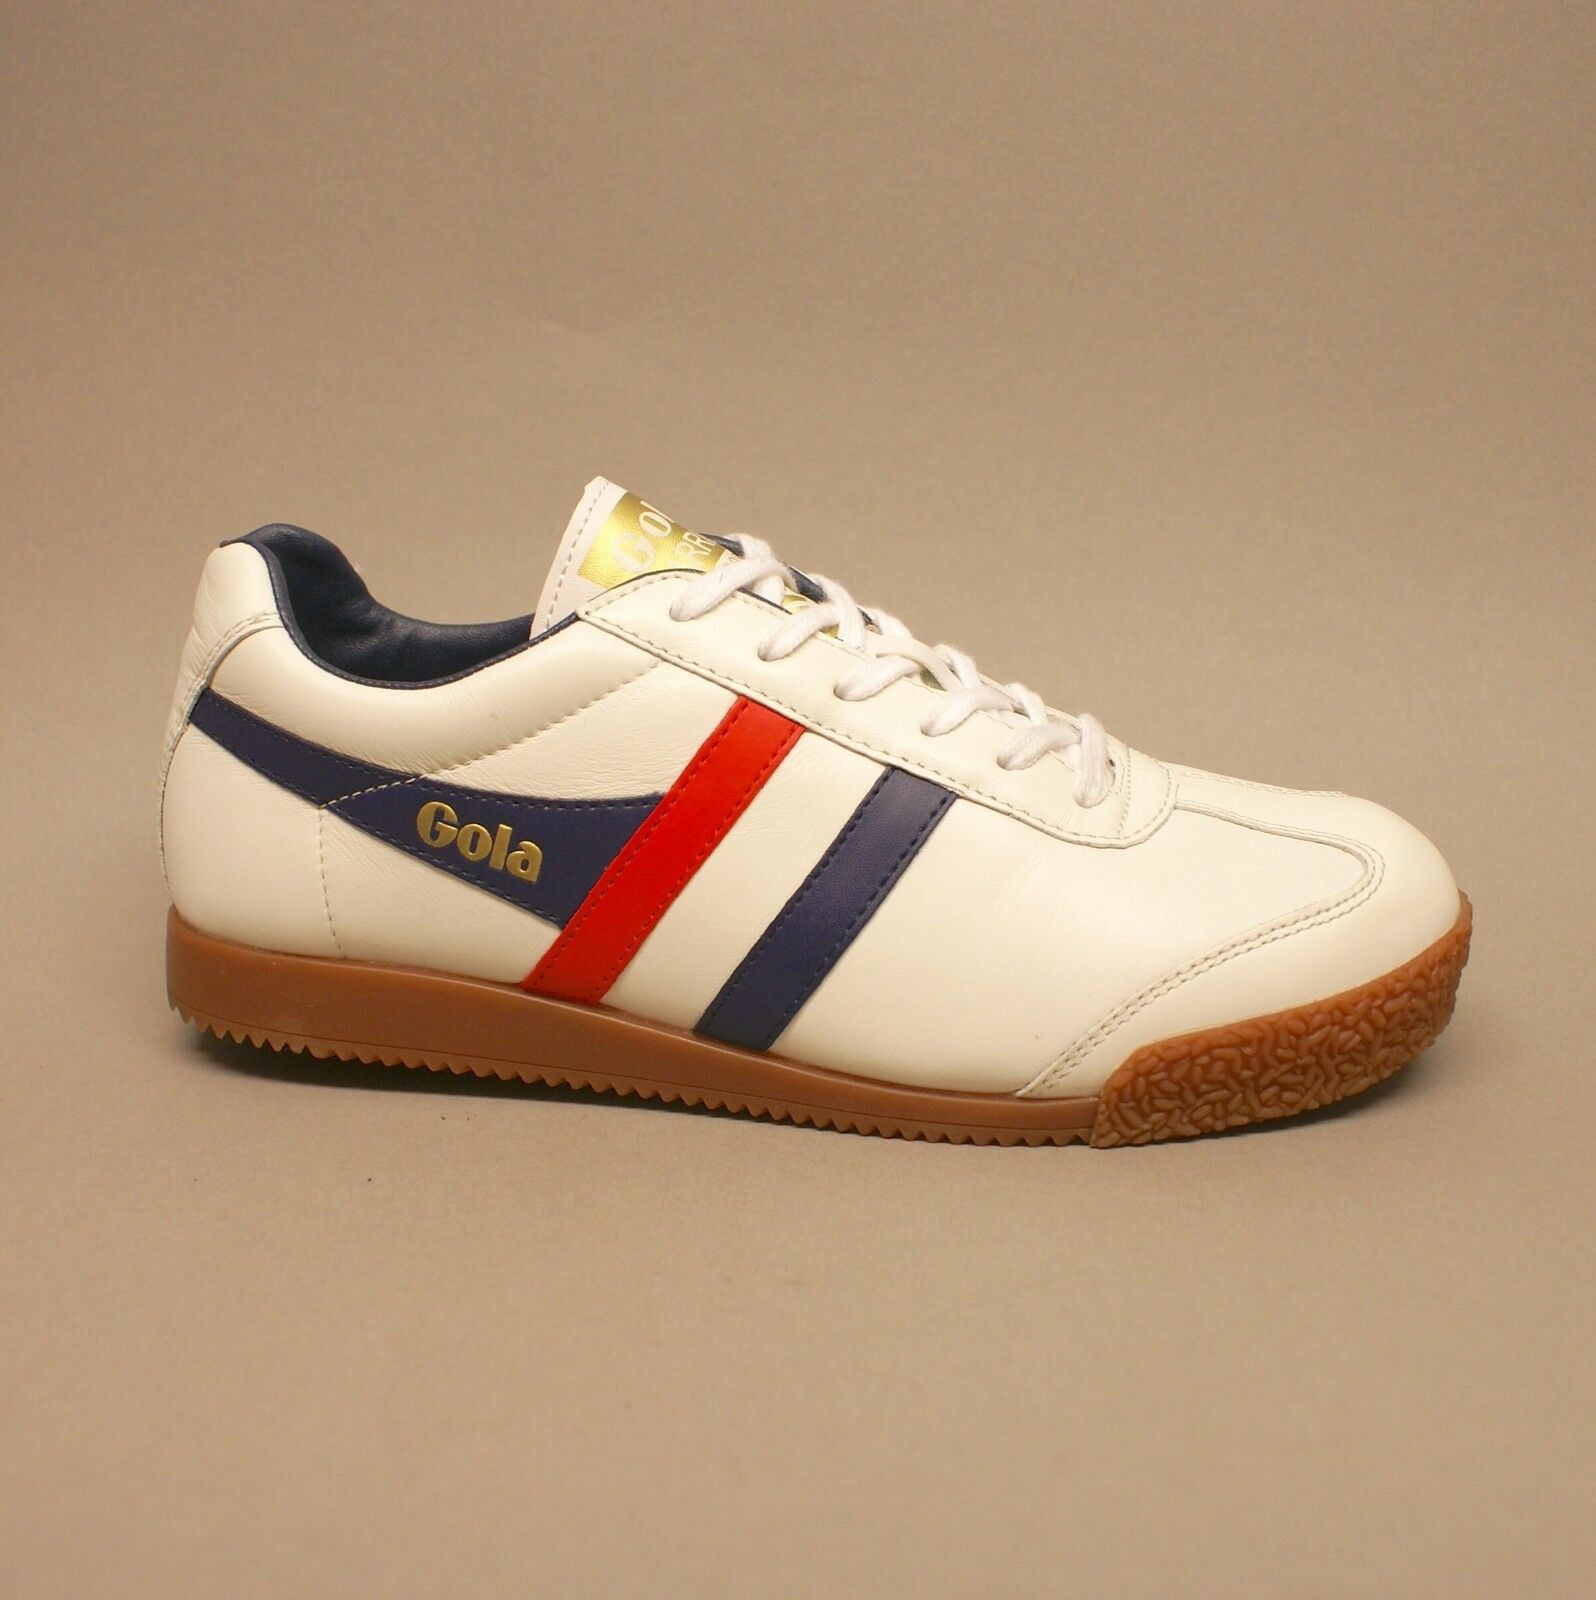 Gola Harrier Leather CMA192 White Navy Red Turnschuhe Sneakers Leder weiß